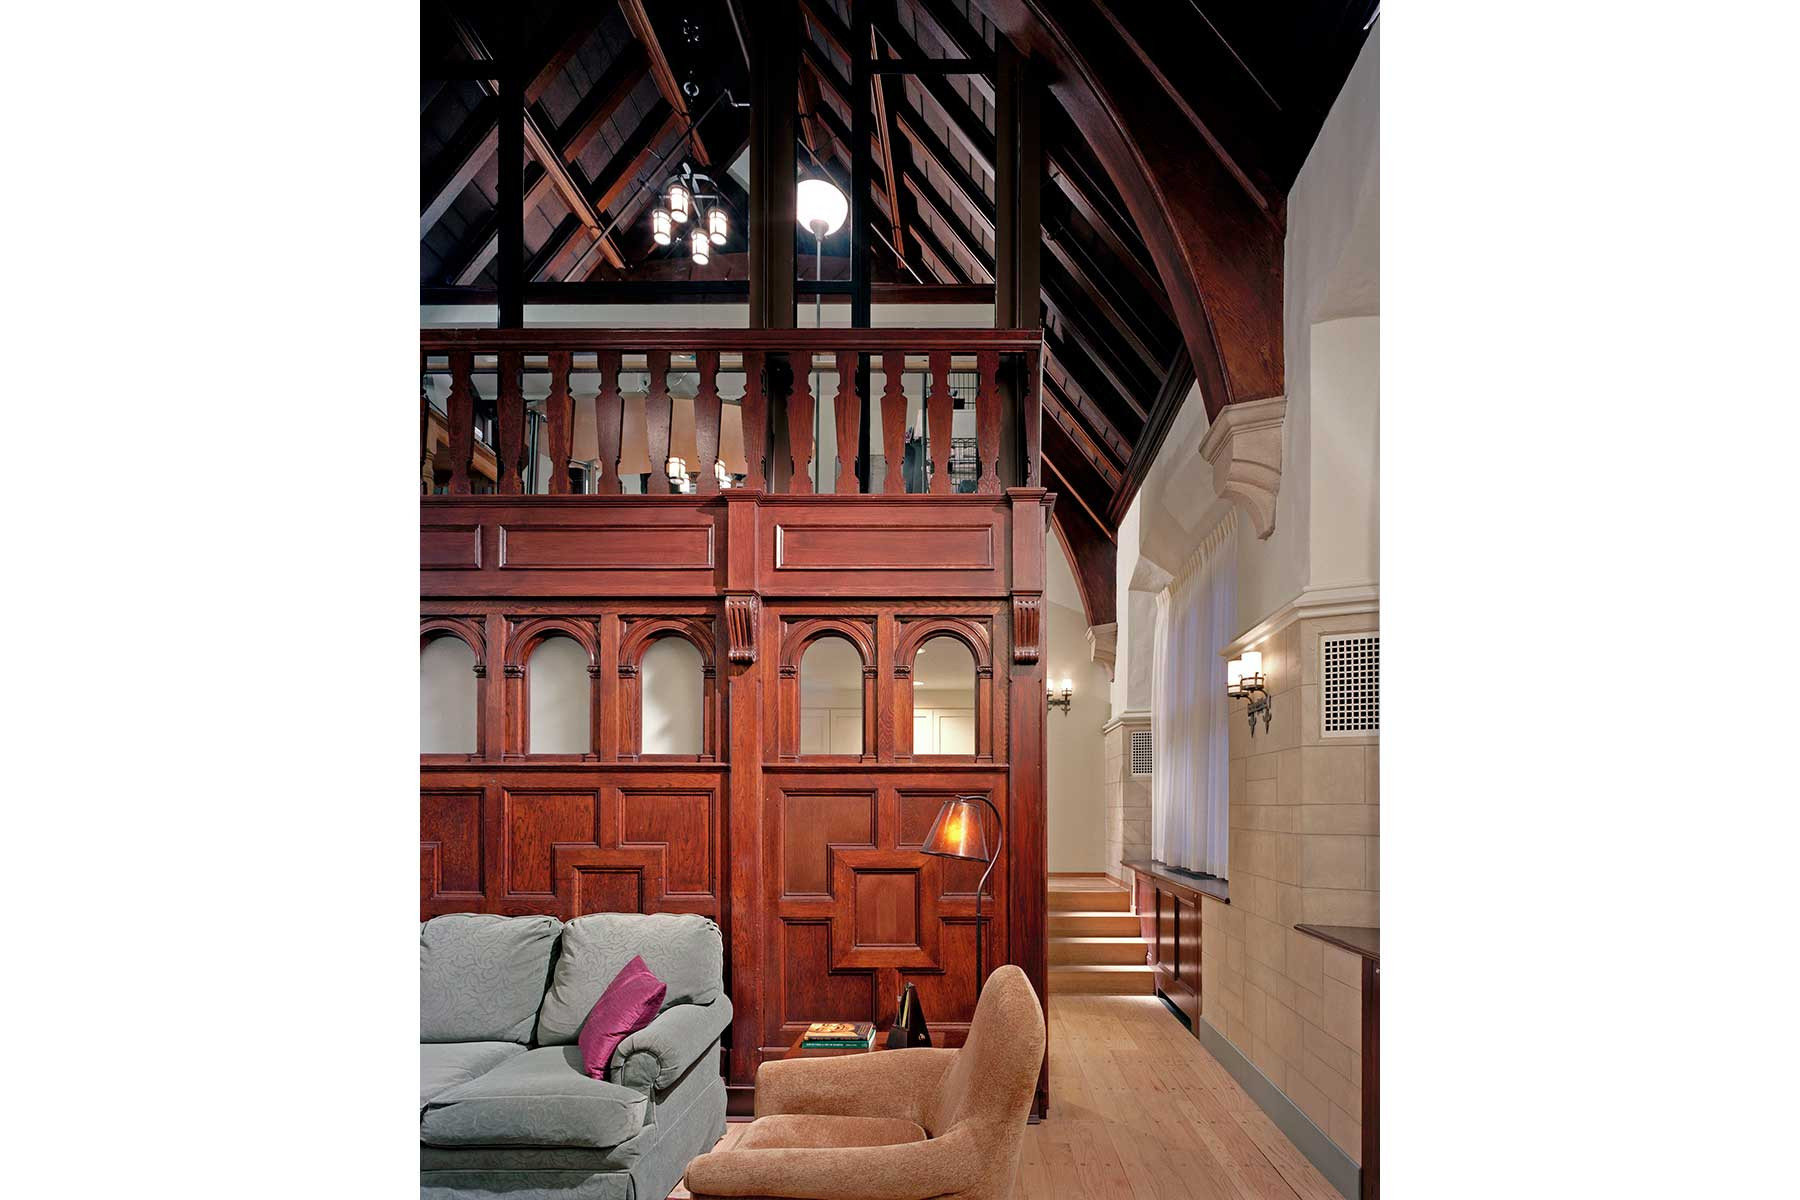 Davenport College Yale University Marguerite Rodgers Interior Design